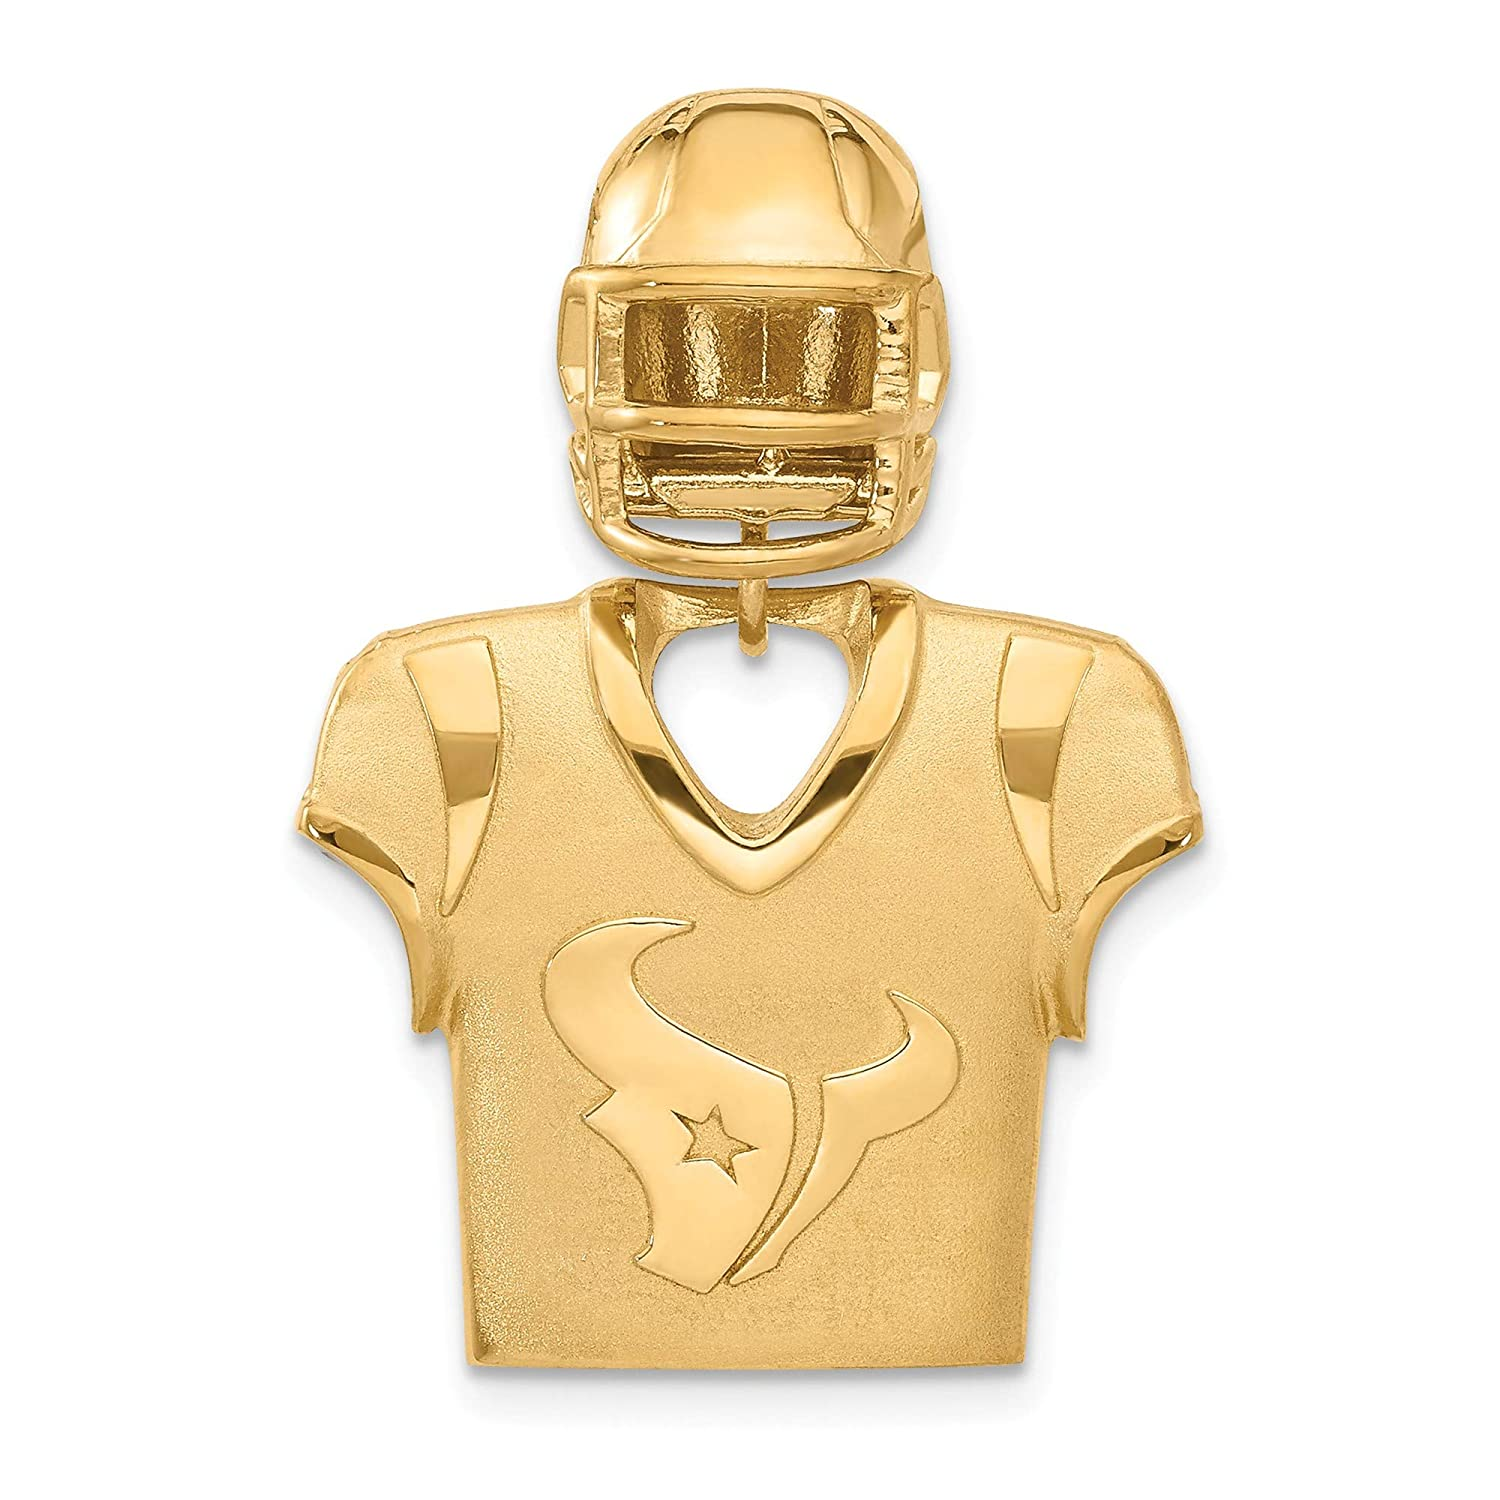 Kira Riley Gold Plated Houston Texans Jersey /& Helmet Pendant for Chains and Necklaces